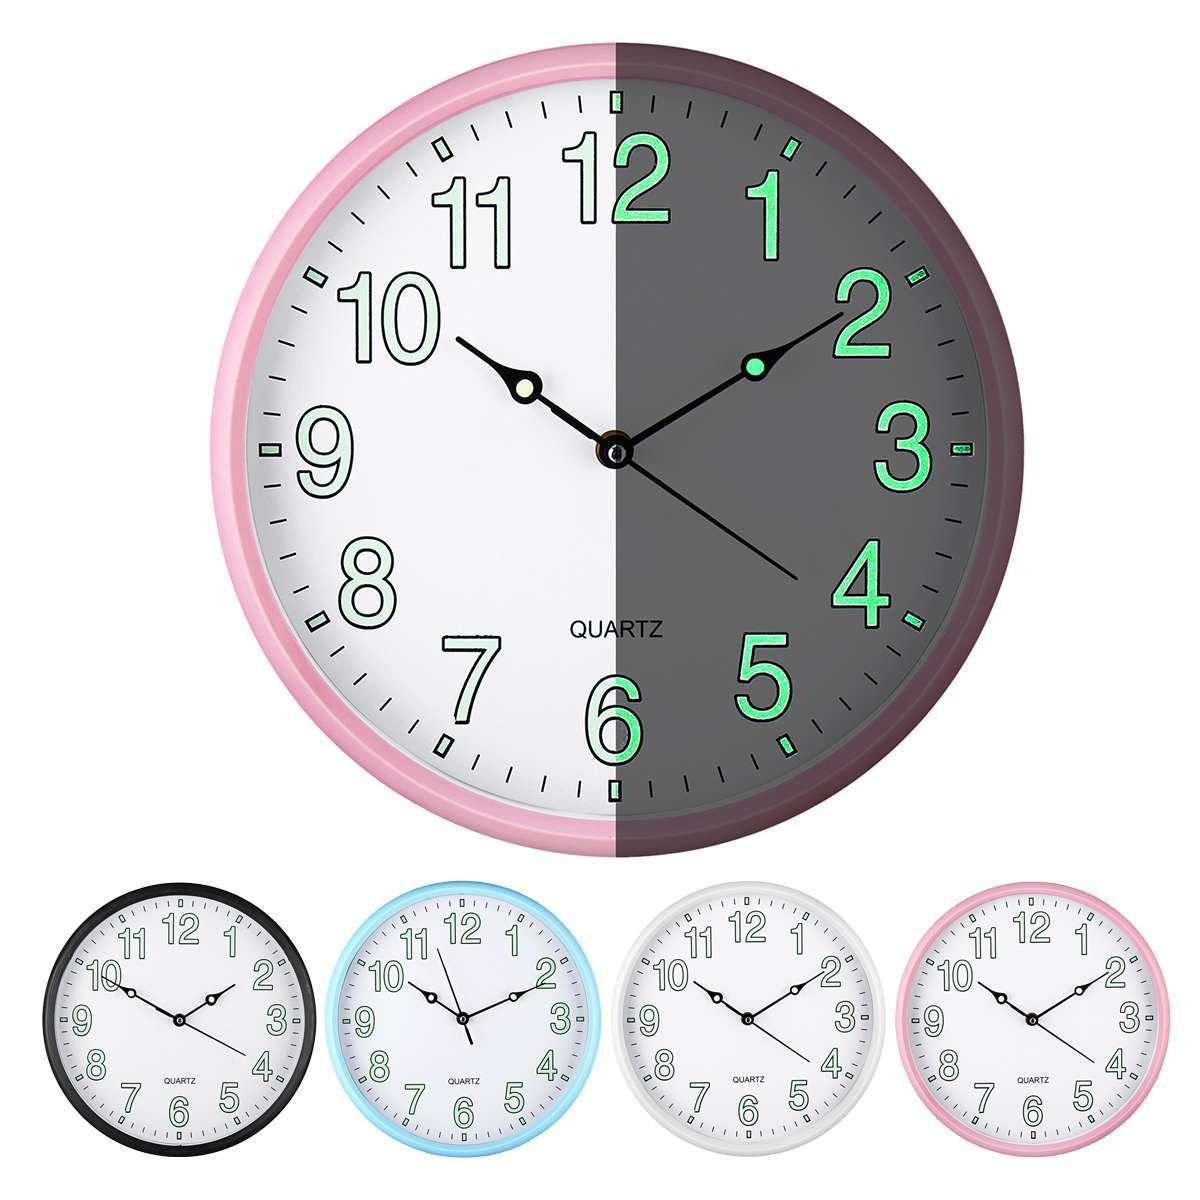 12 Wall Clock Glow In The Dark Silent Quartz Home Decoration Livingroom Digital Number Wall Clock Glow Light Up Y200109 Wall Clocks For Kitchens Wall Clocks For Living Room From Highqualit06 25 59